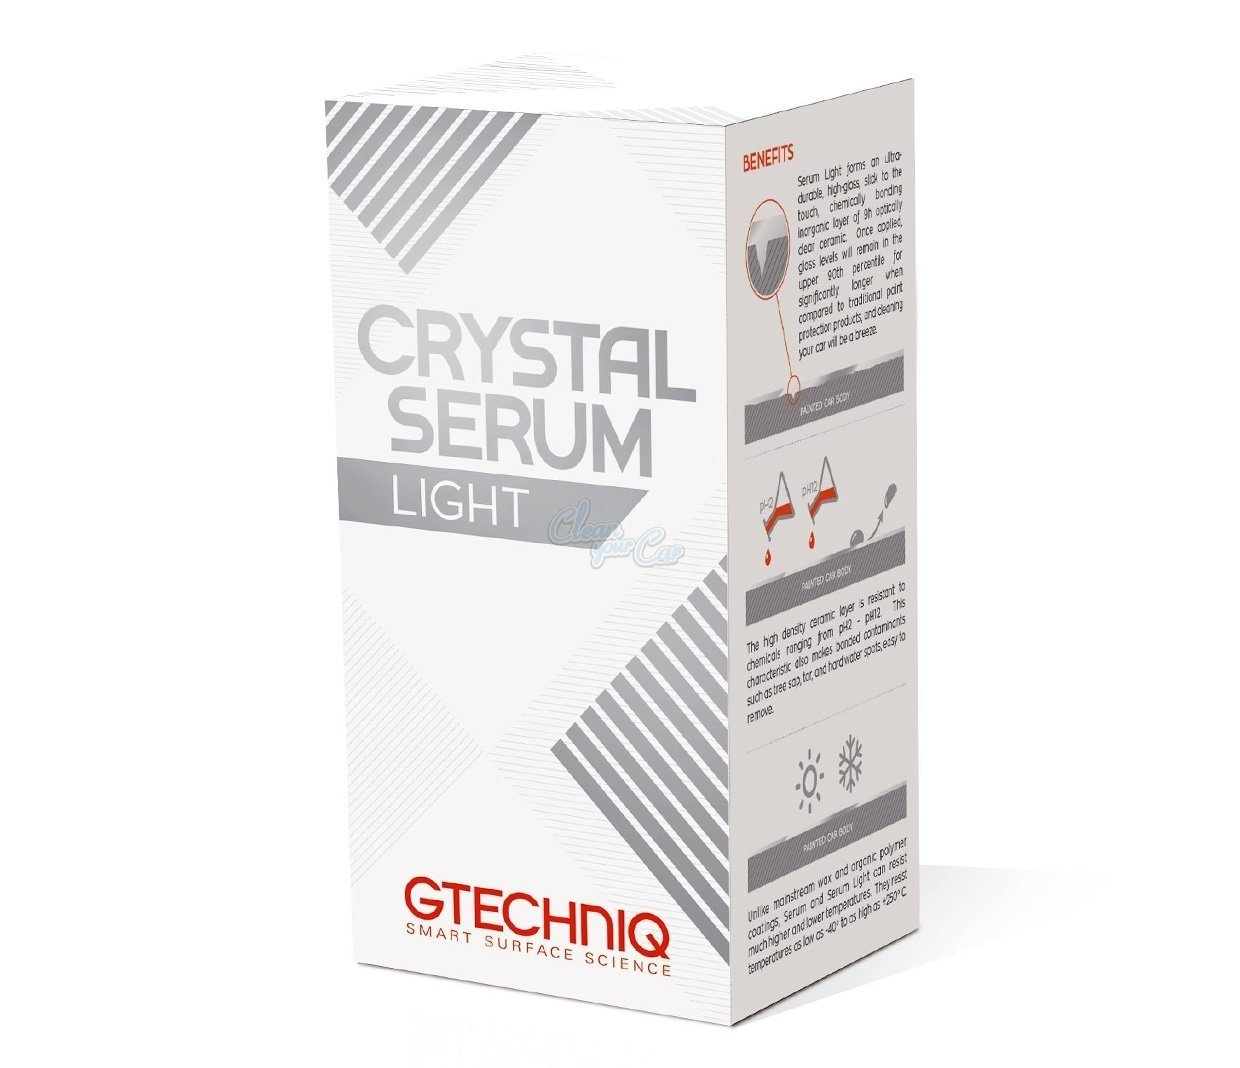 Amazon.com: Gtechniq Crystal Serum Light ceramic composite coating the best paint protection: Automotive